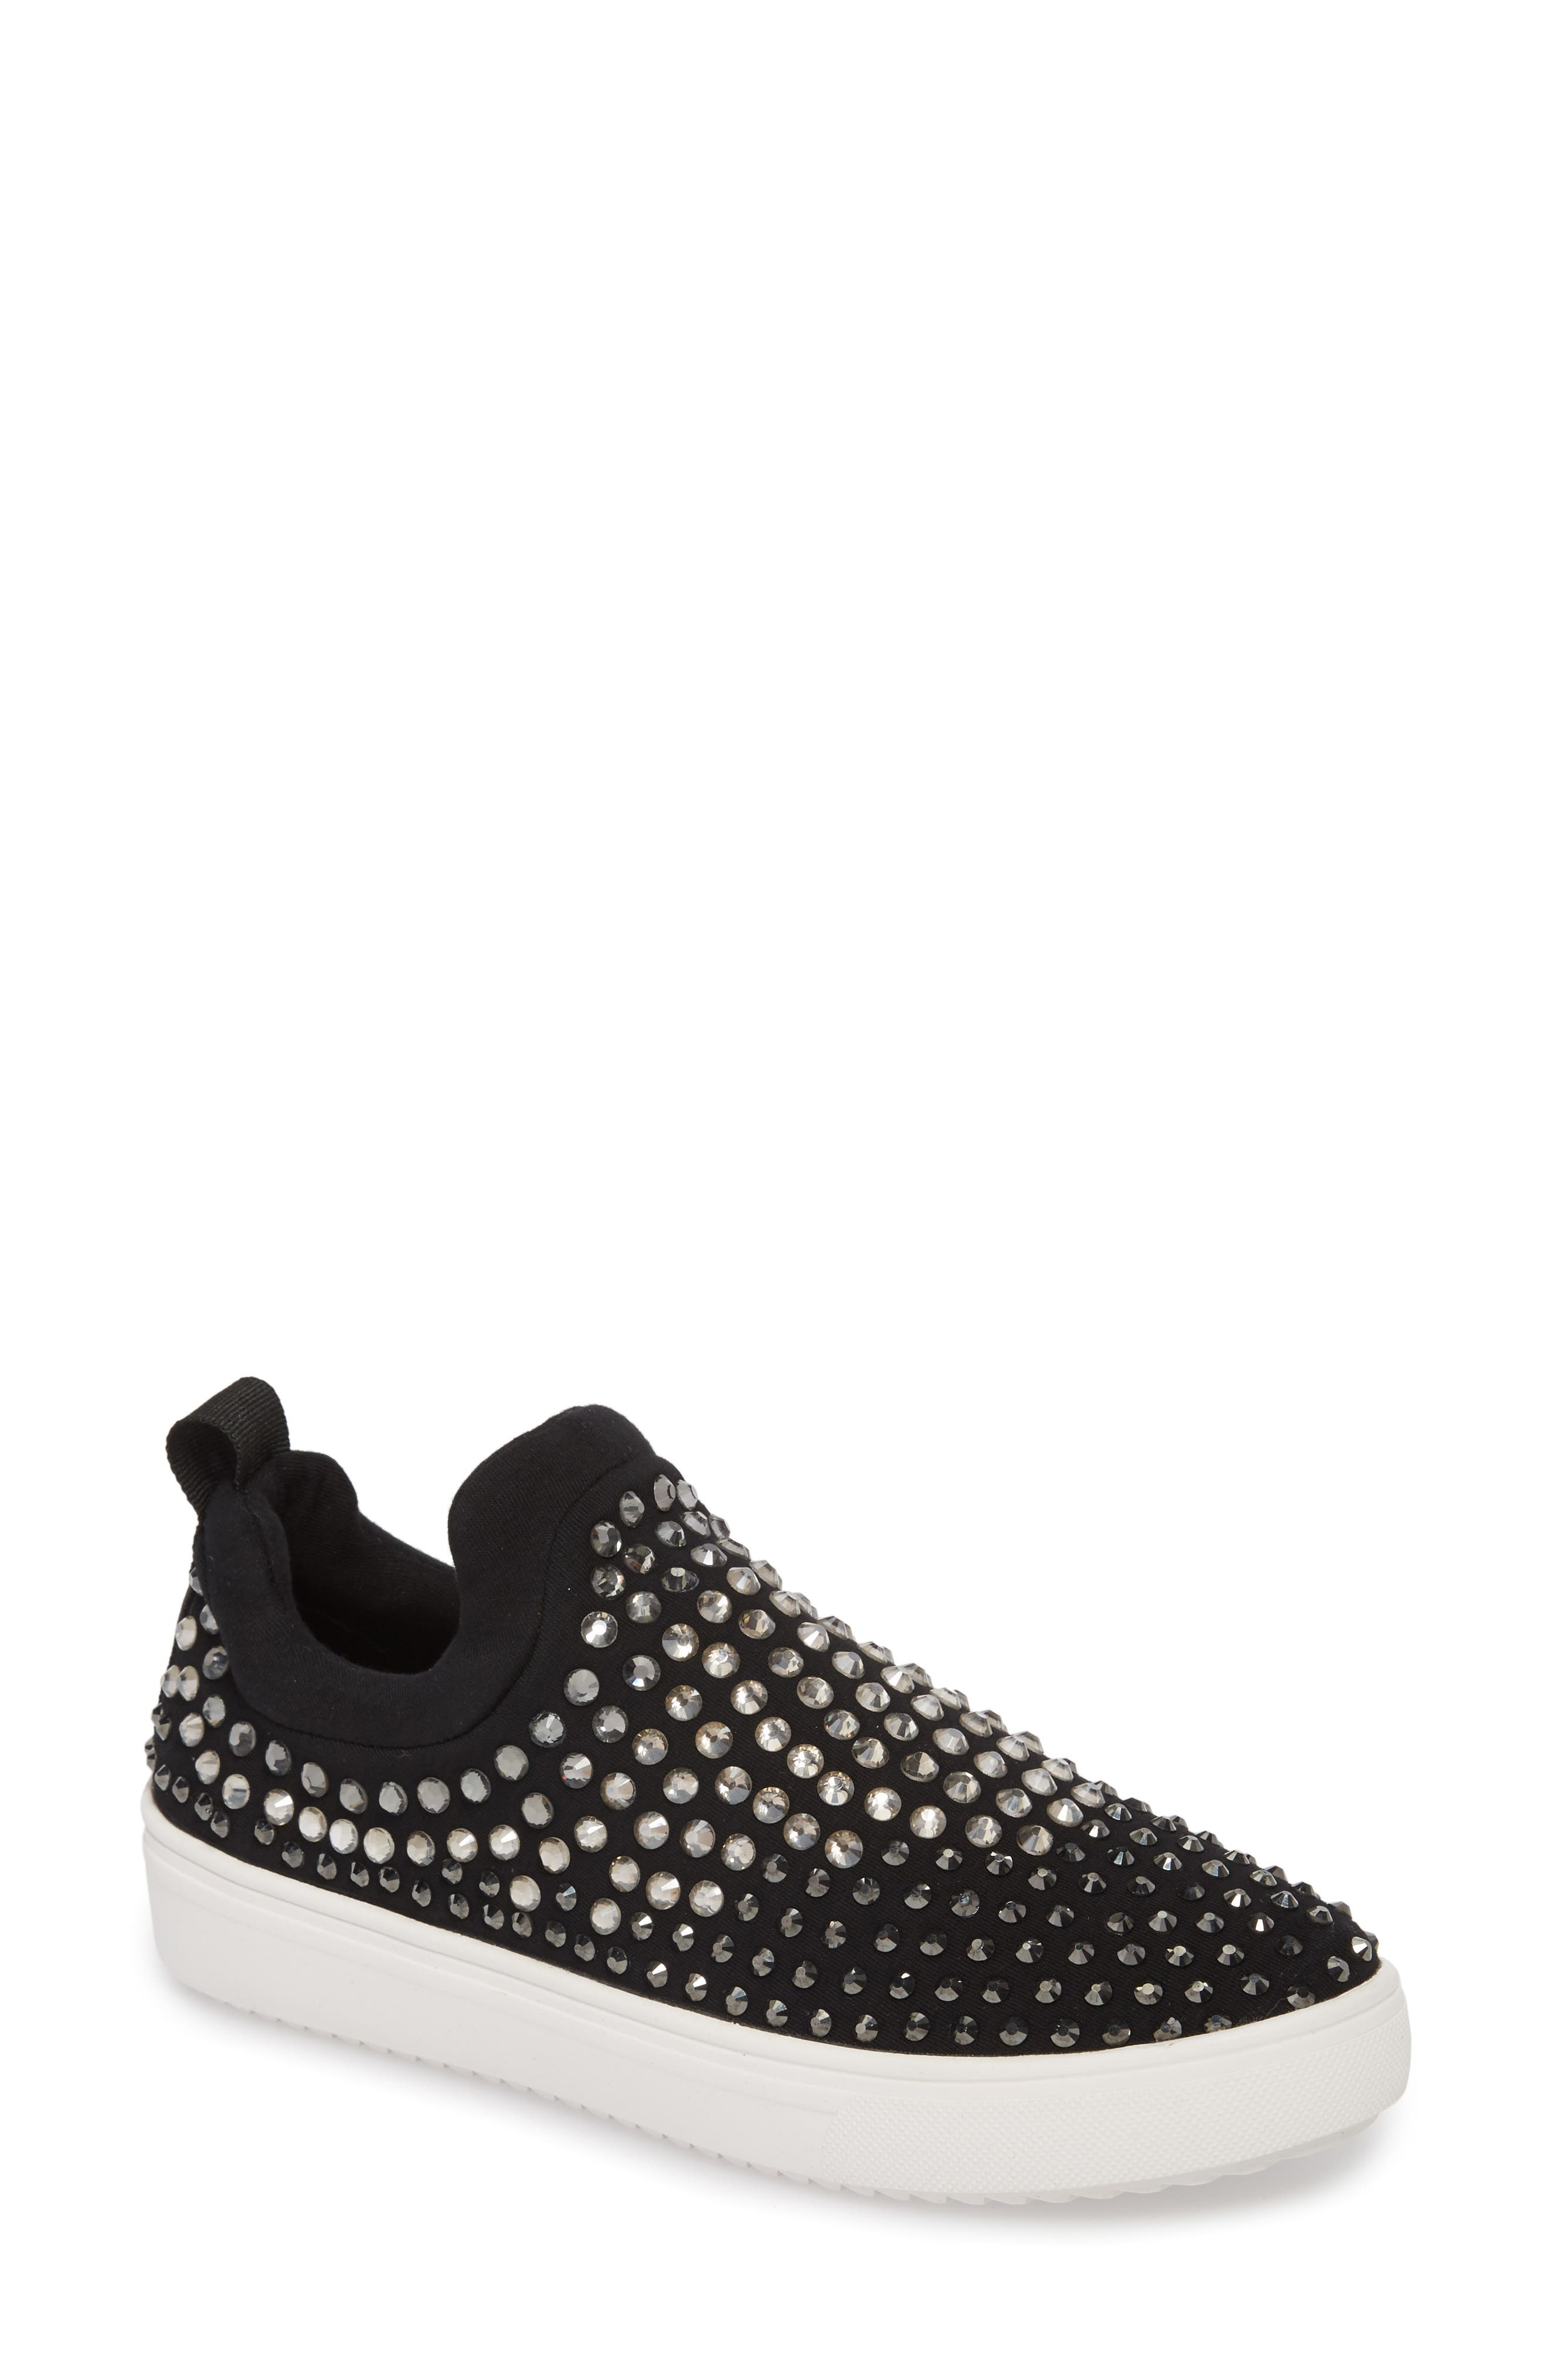 Sherry Crystal Embellished Sneaker,                         Main,                         color, Black Multi Fabric